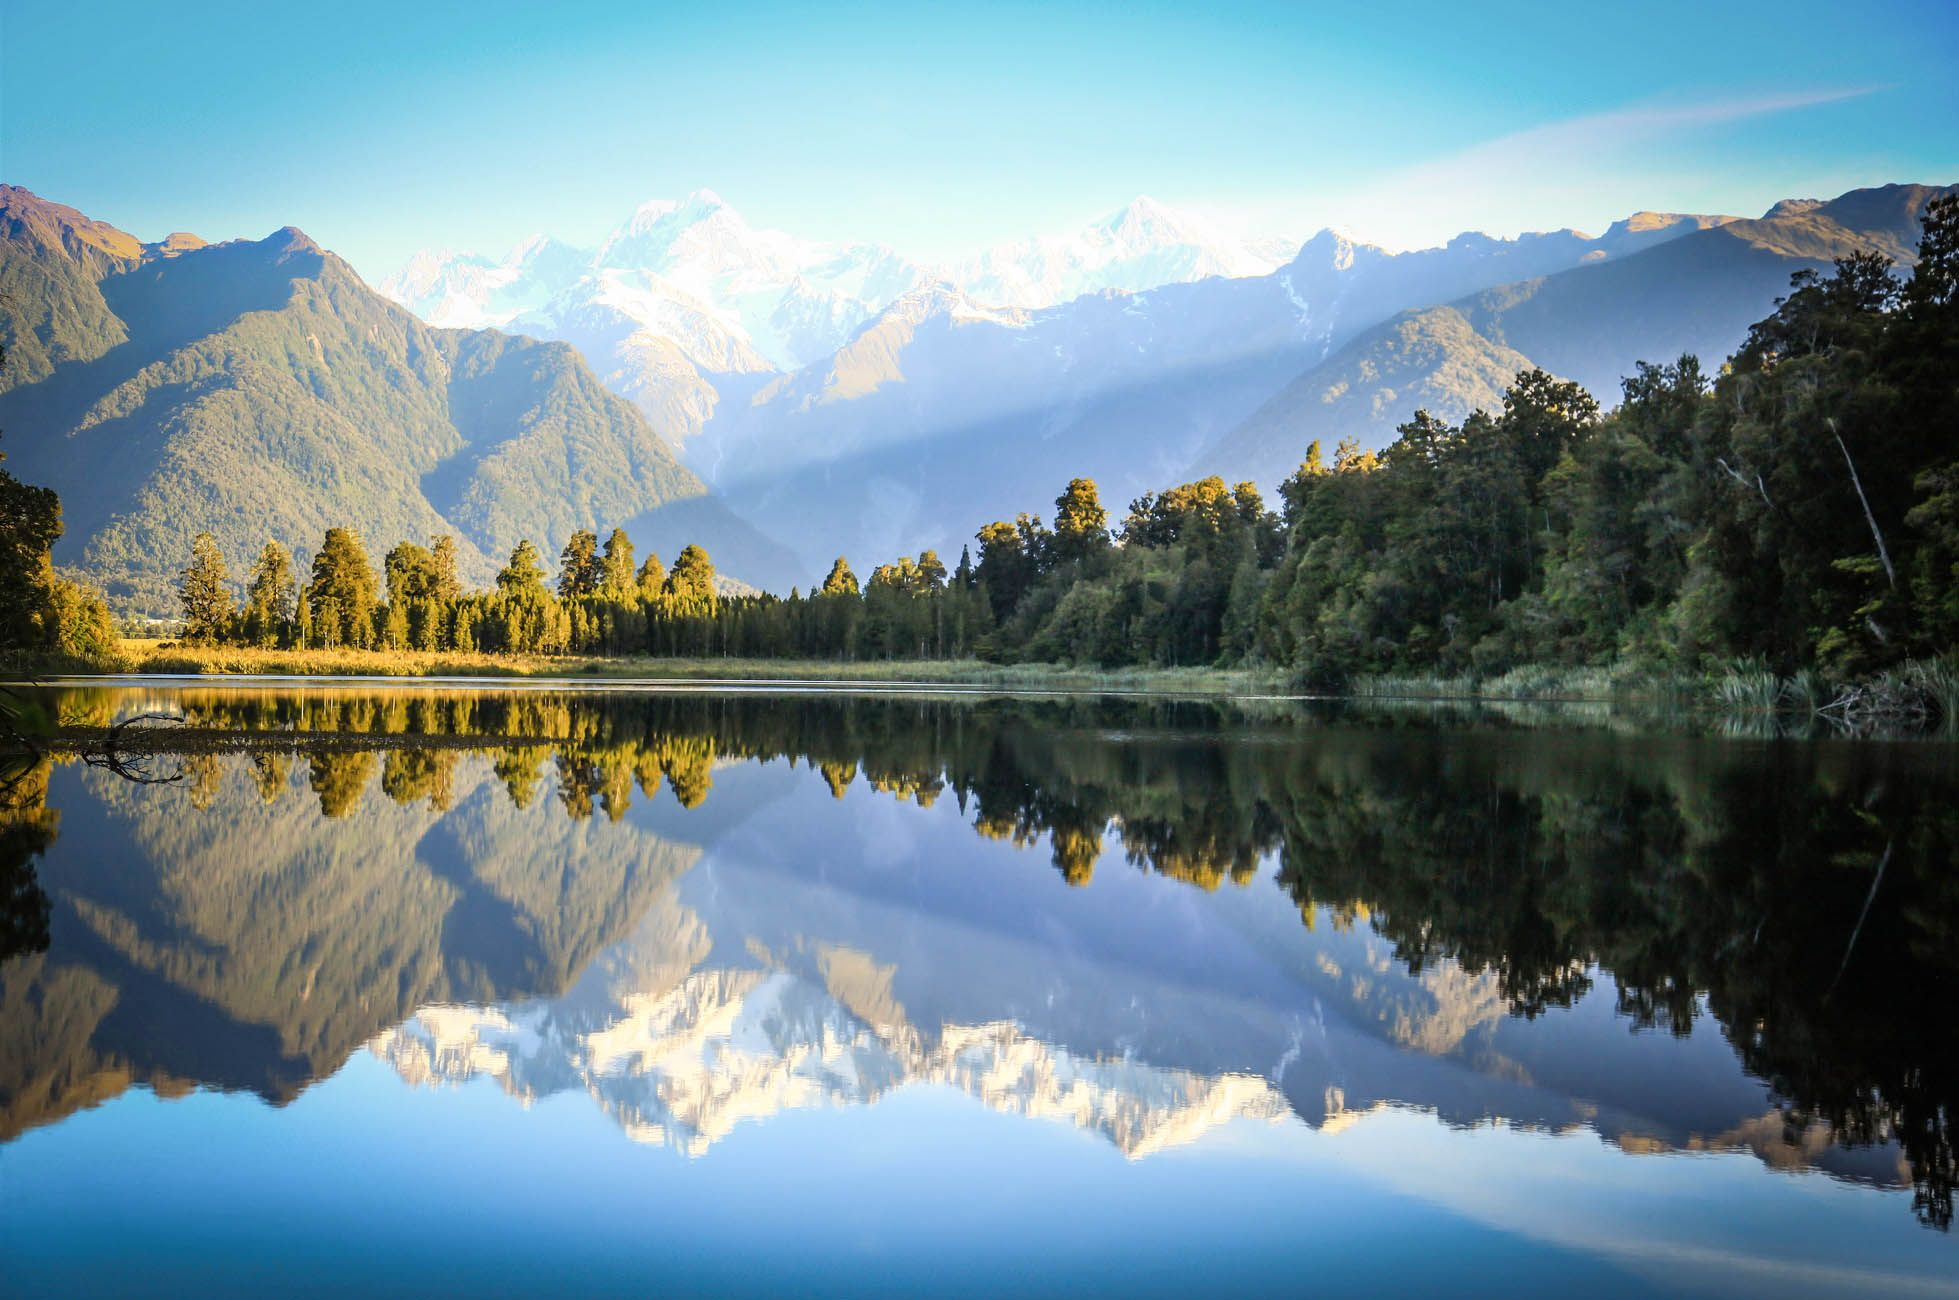 Aoraki Mount Cook Amazing Hd Wallpapers High Quality All Hd Wallpapers New Zealand Lakes New Zealand Travel Travel Photography